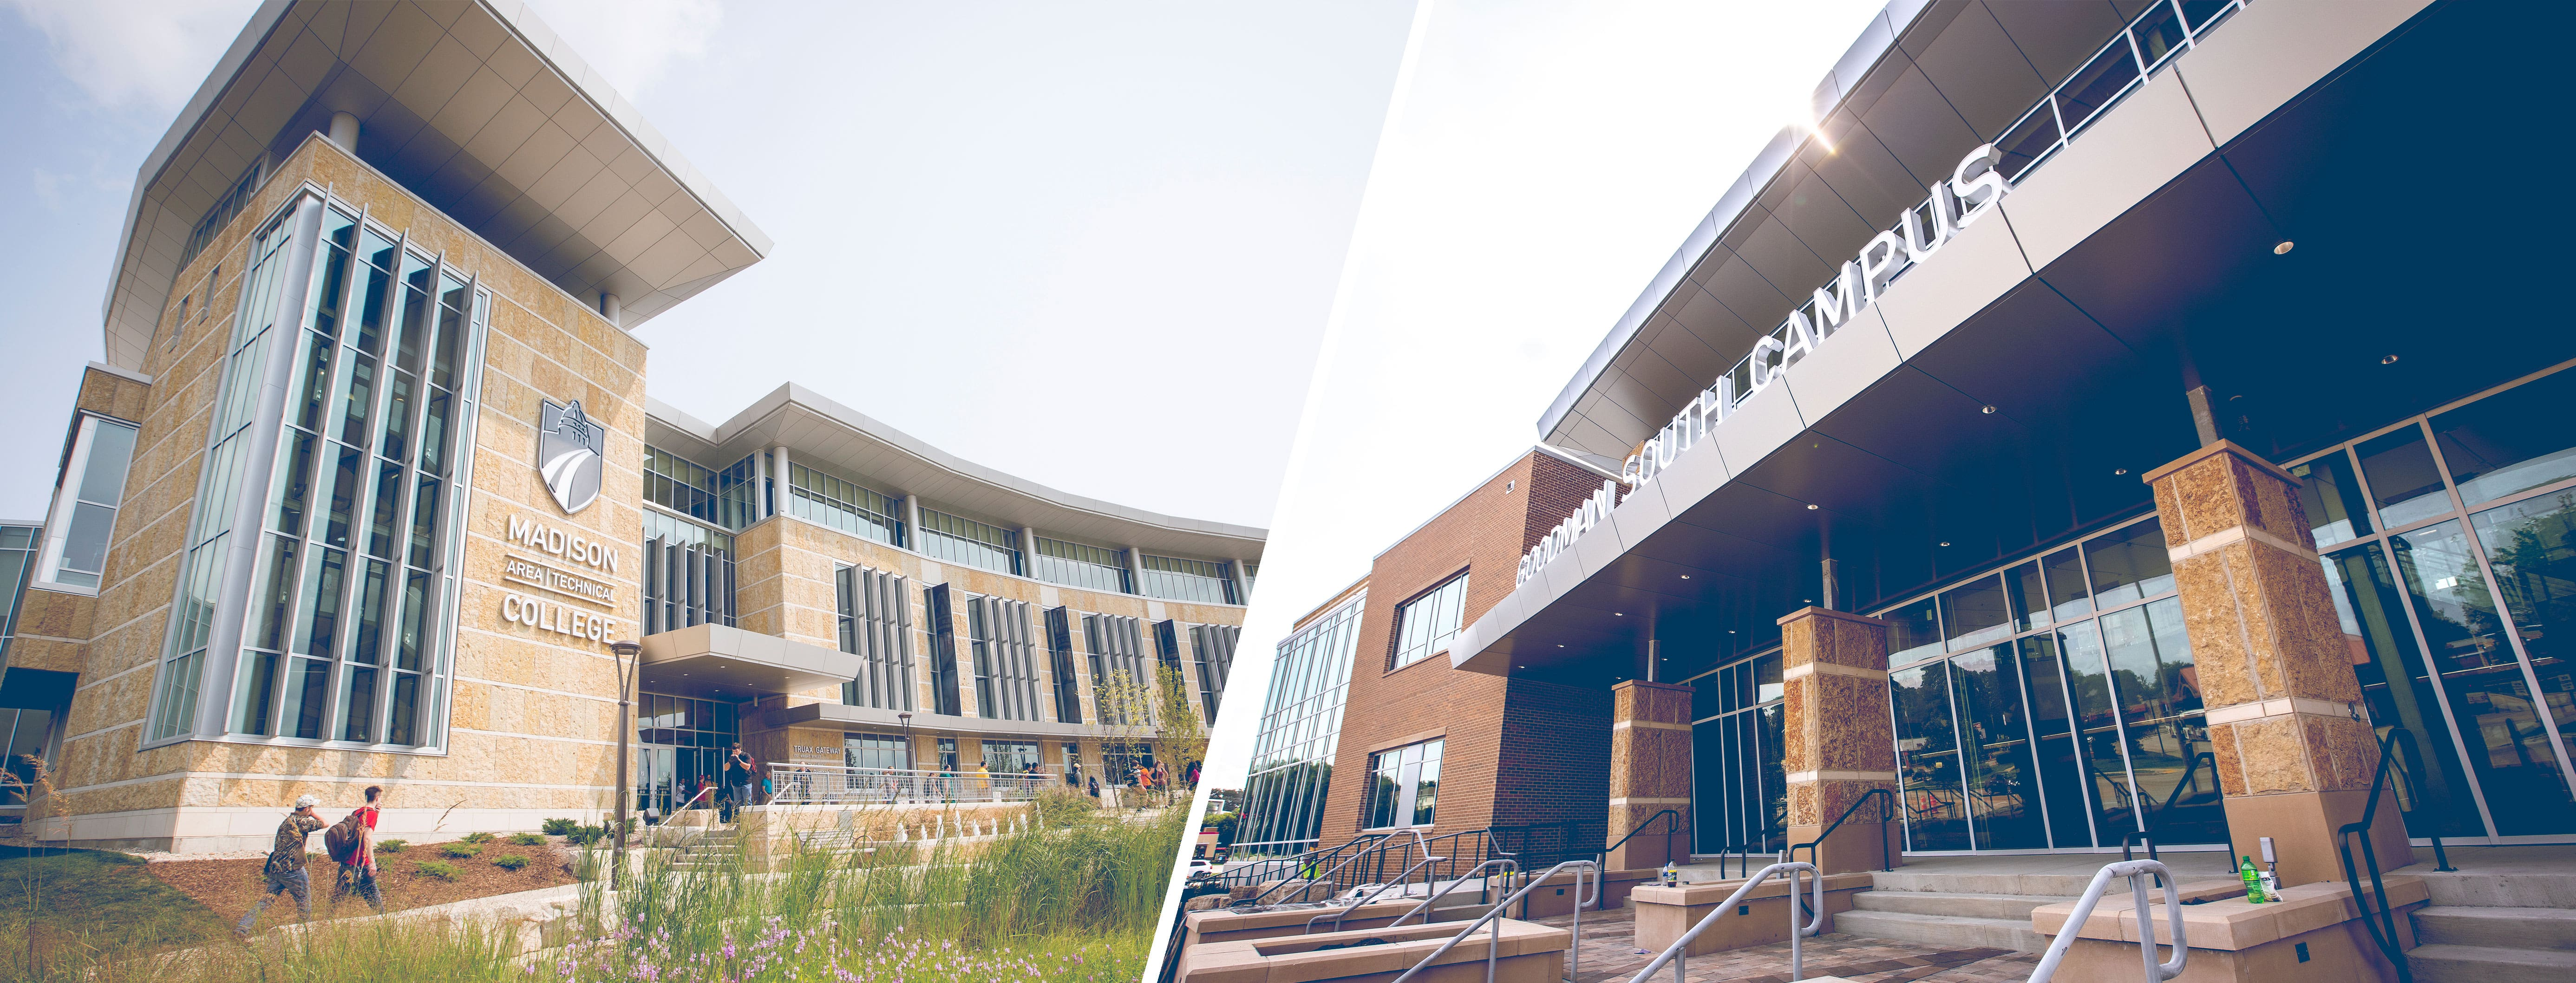 Truax and Goodman South Campuses